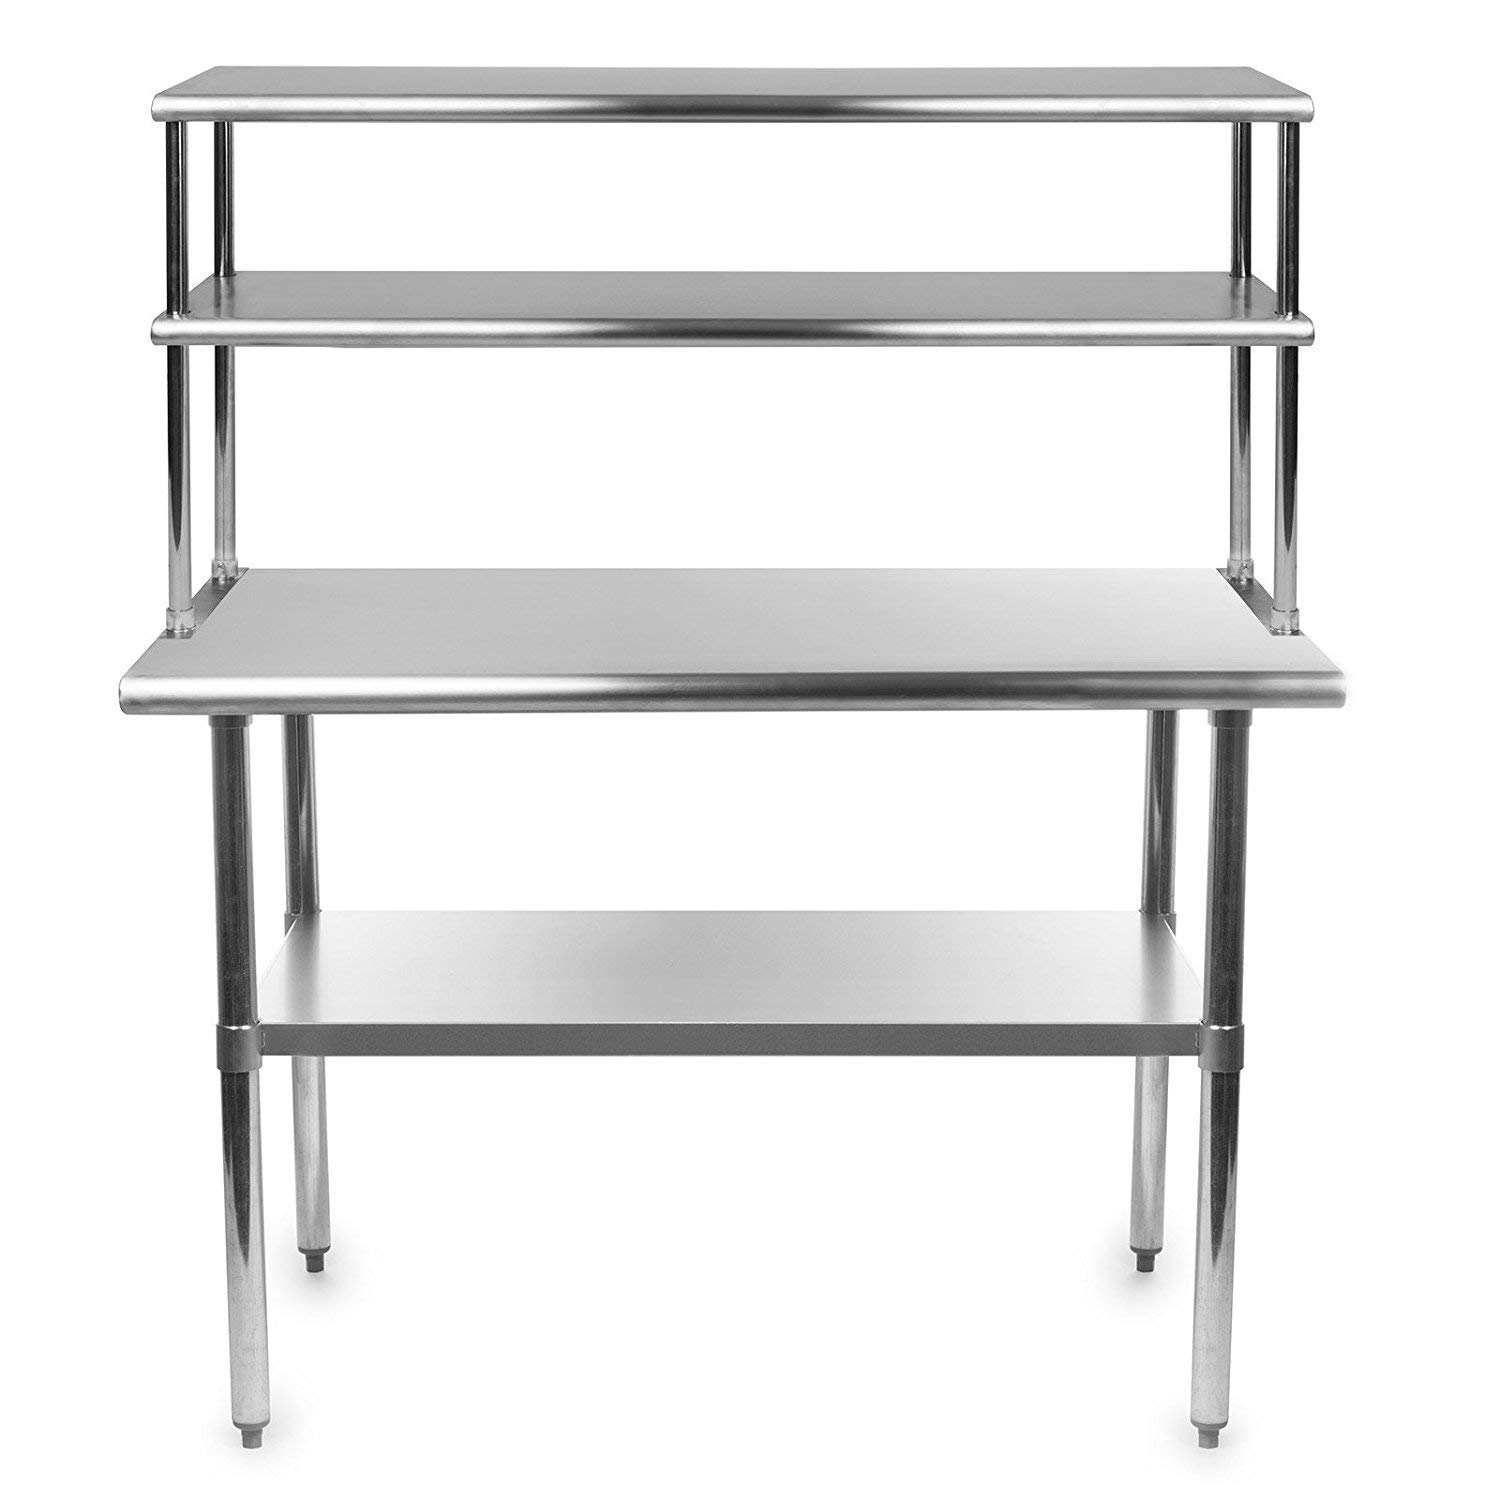 Stainless Steel Work Prep Table 18 x 30 with Adjustable Double Overshelf 12 x 30